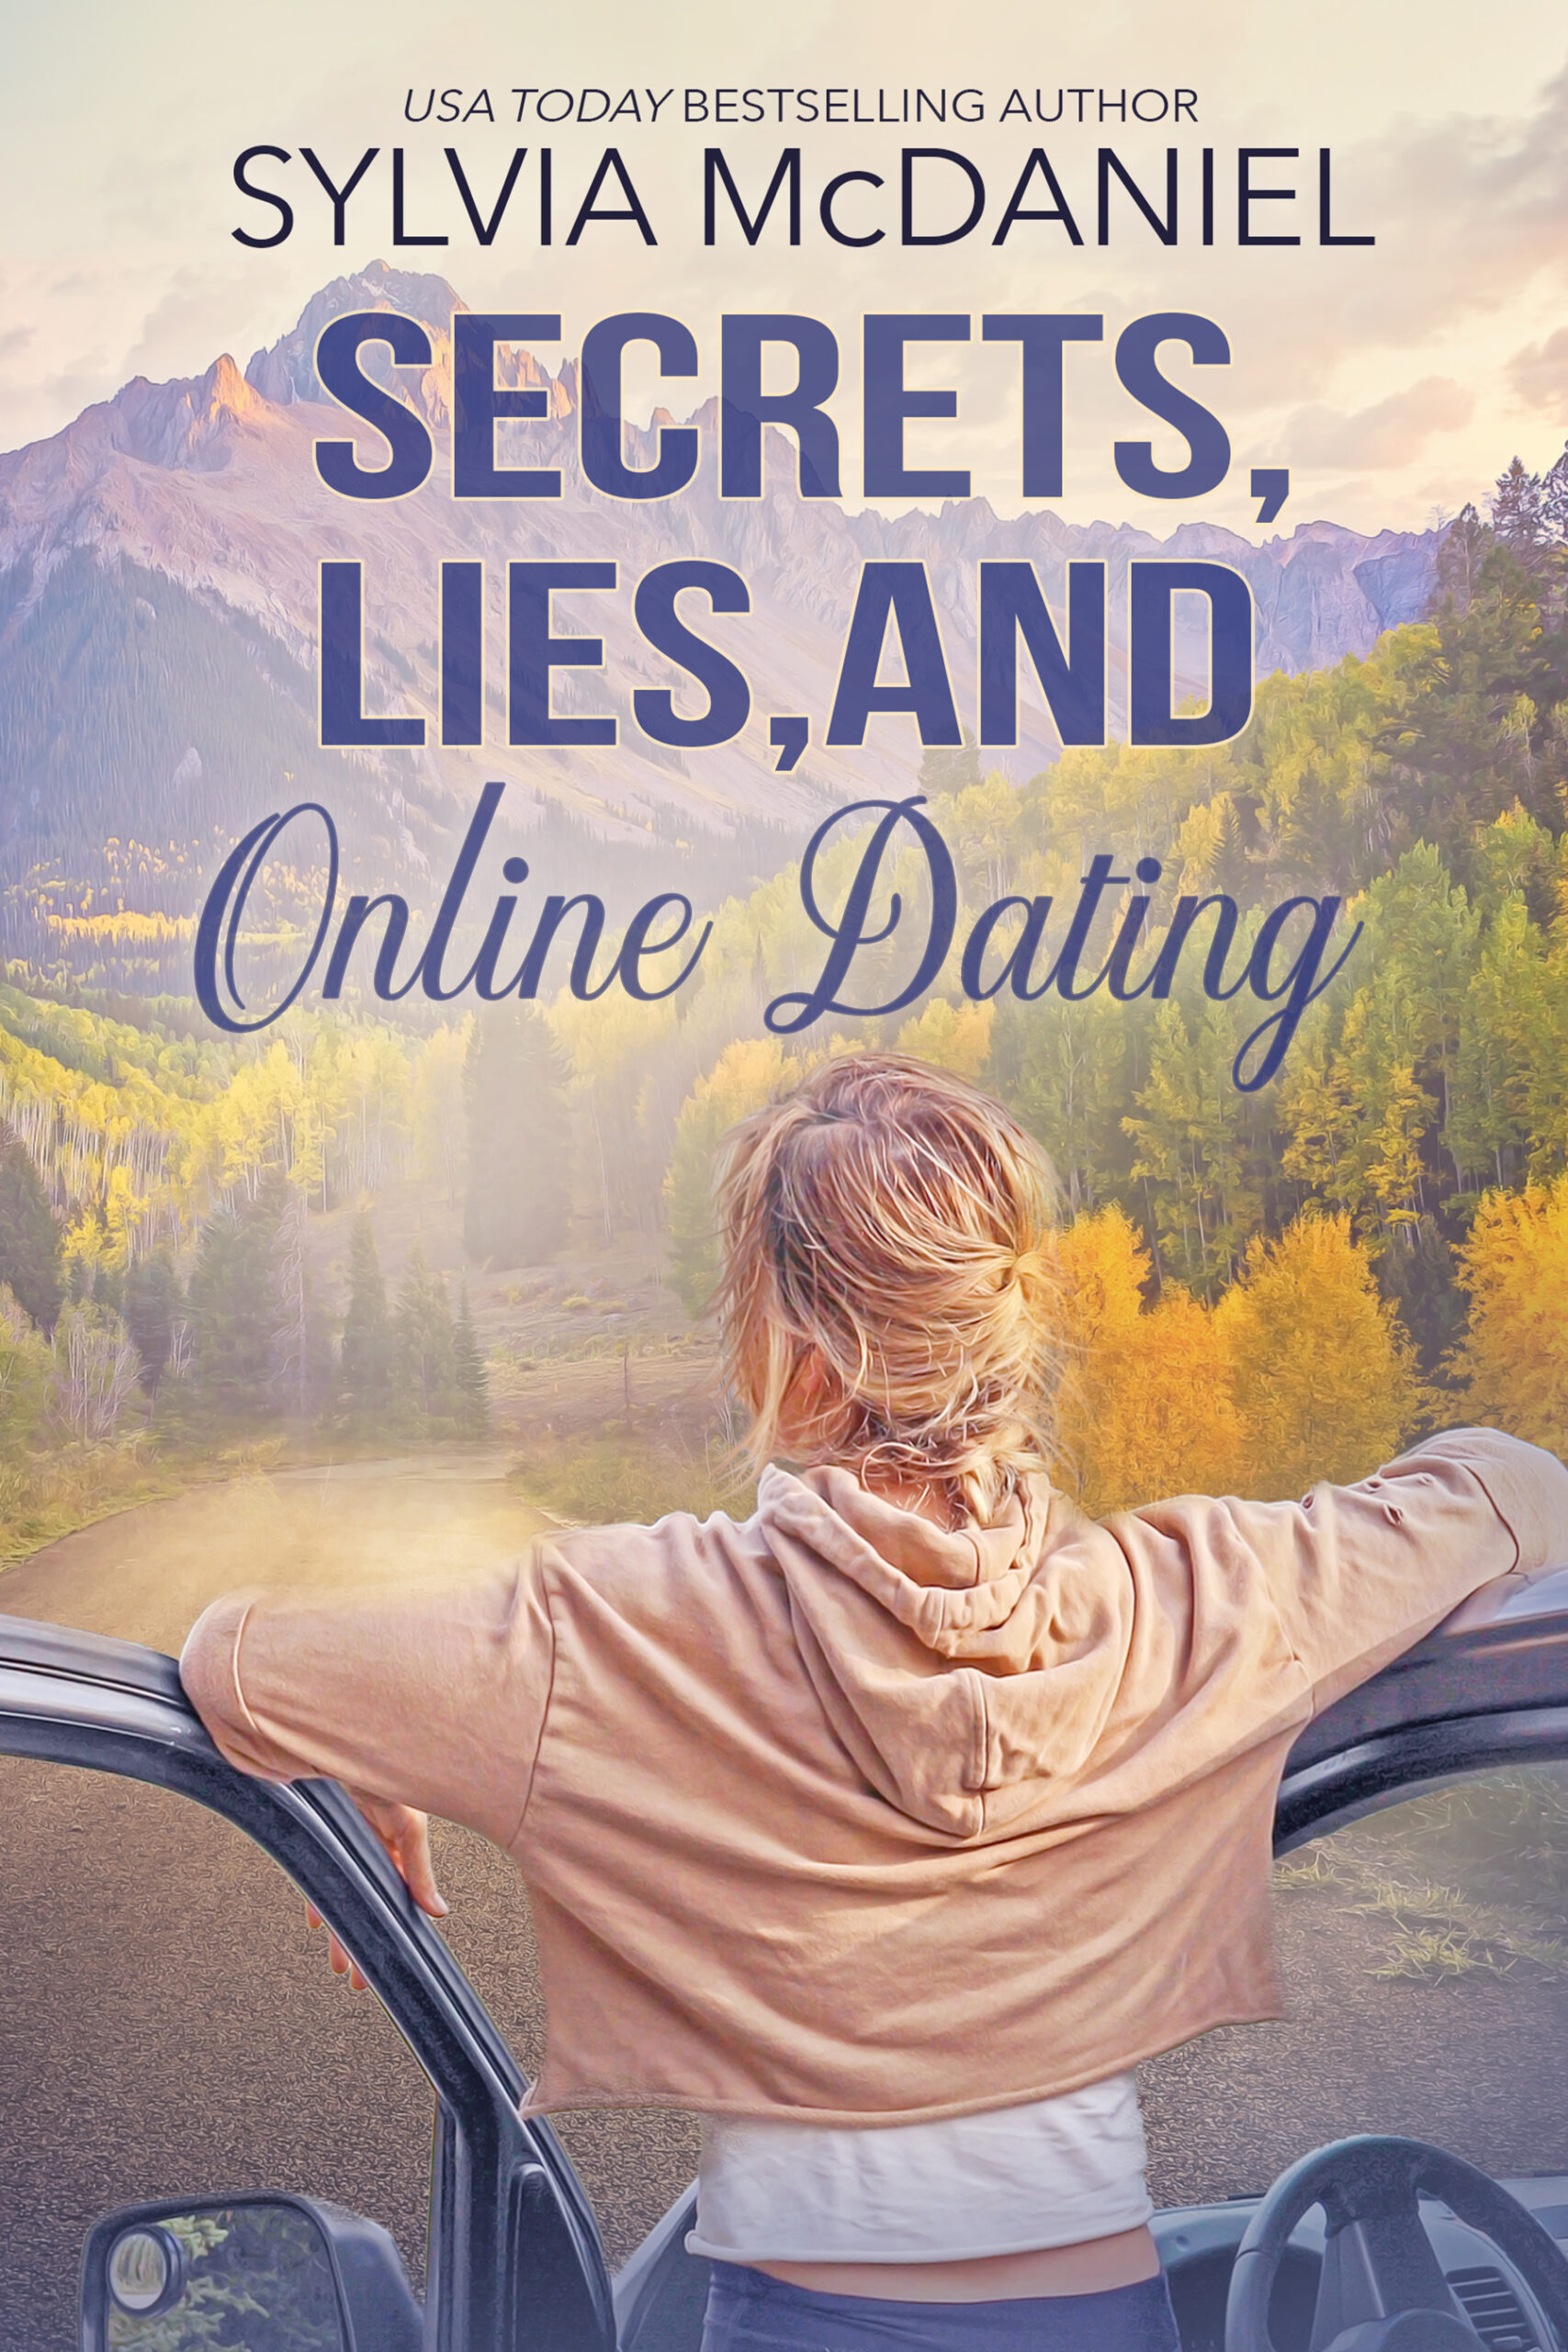 Cover of Secrets, Lies and Online Dating by Sylvia McDaniel. Blonde woman looking up the road at the mountains.